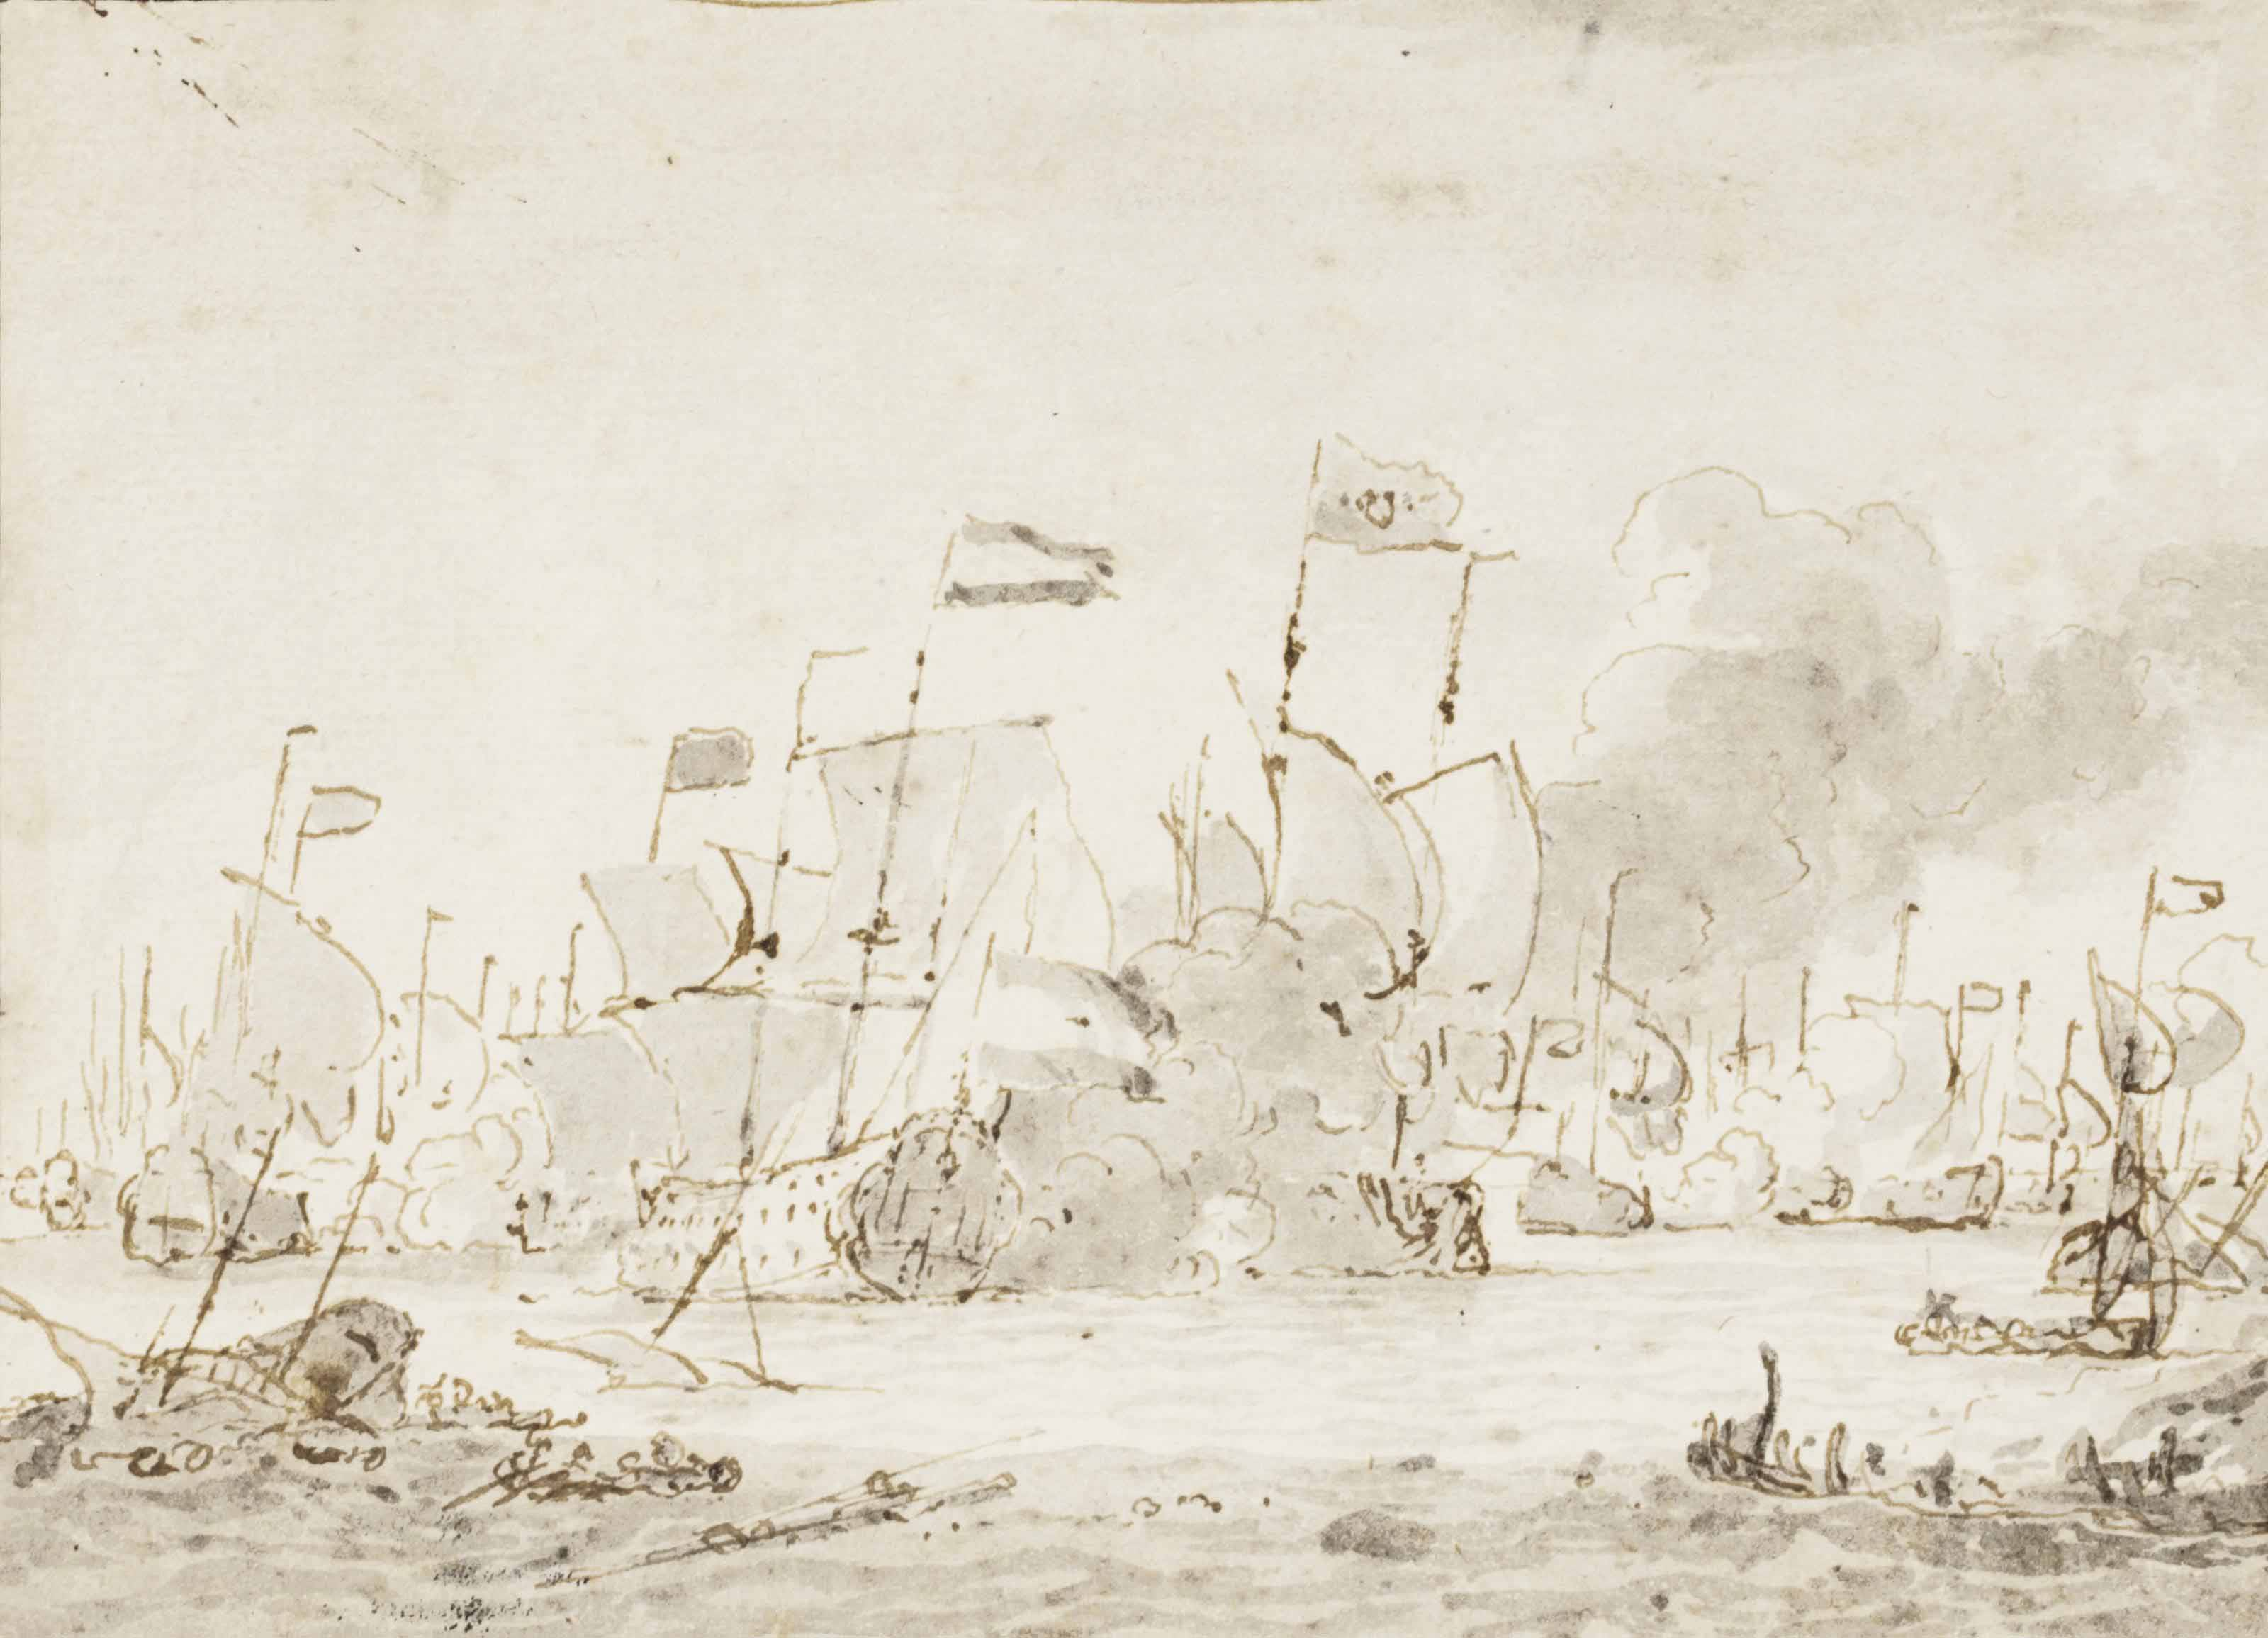 The naval battle of the Texel